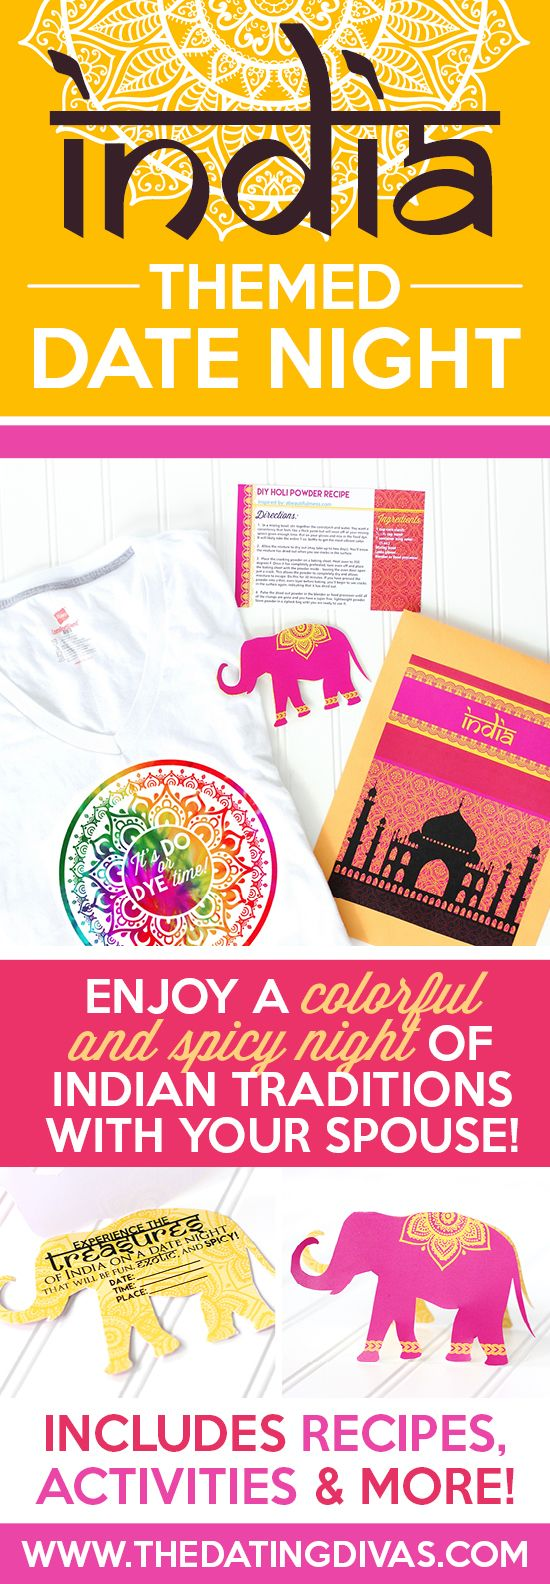 Fun printables for an Indian Date Night including an invitation, recipes cards, activity, and MORE! From www.TheDatingDivas.com